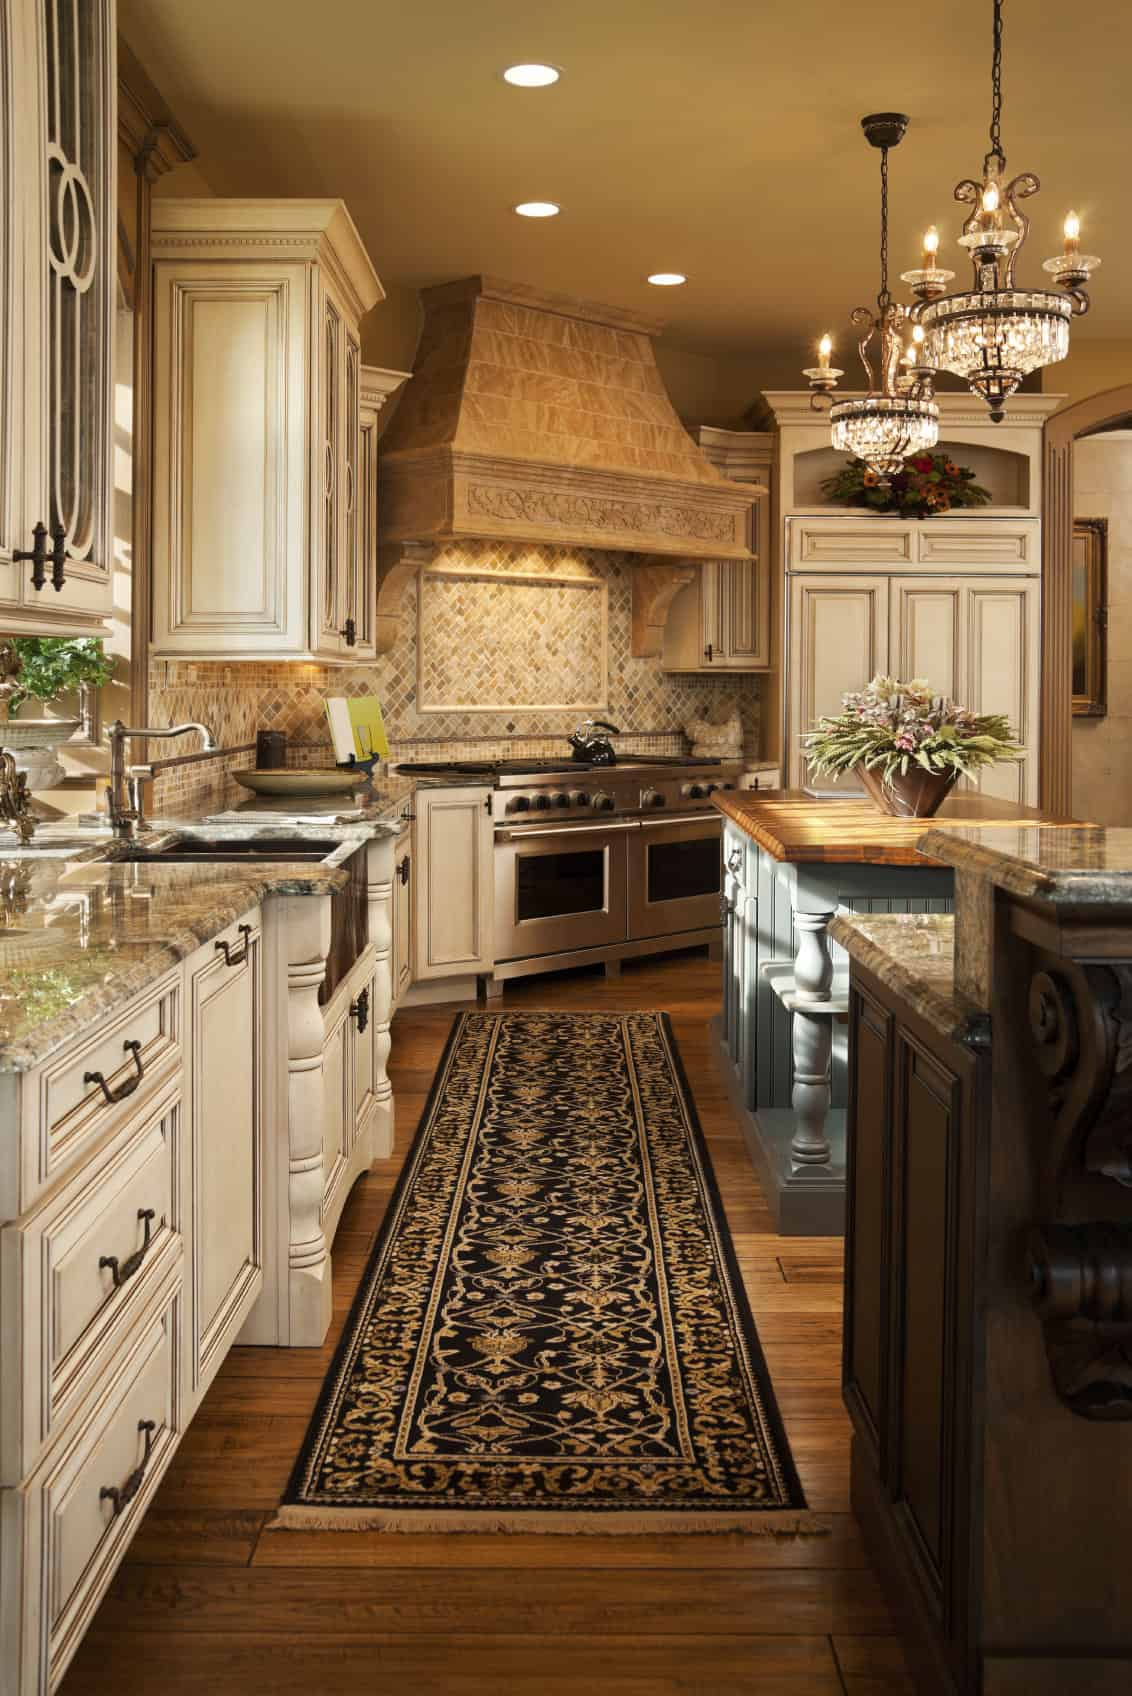 This happy kitchen has large but compact islands with carved wood bottoms. Above are gorgeous hanging chandeliers and lights fitted into the ceiling, and alongside the kitchen wall are the appliances and storage drawers.